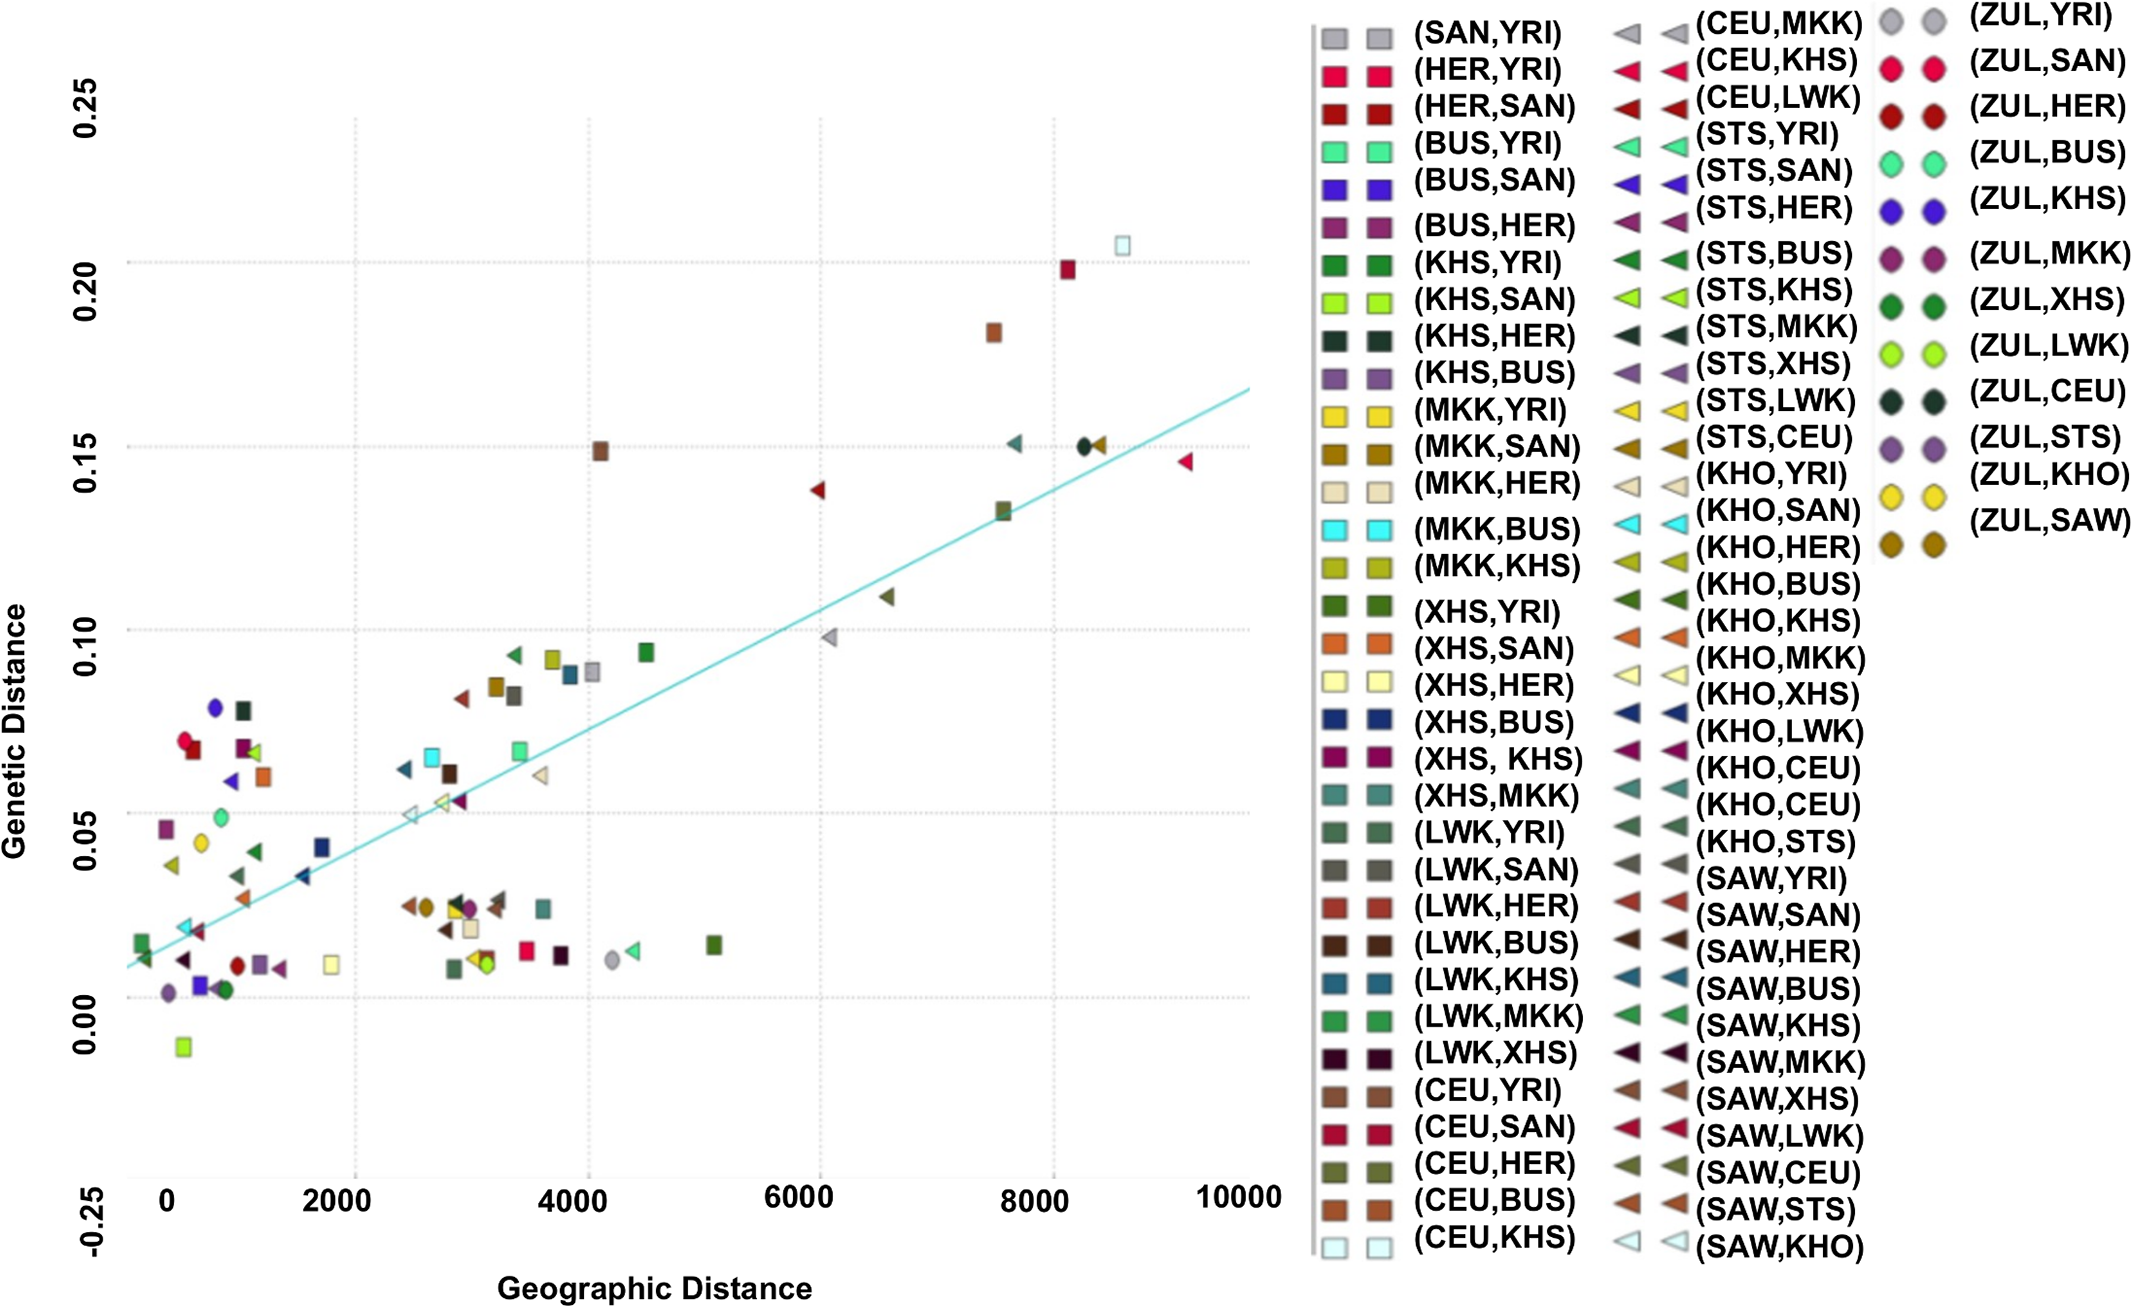 Relationship between genetic distances from southern African populations and their corresponding geographic distances.